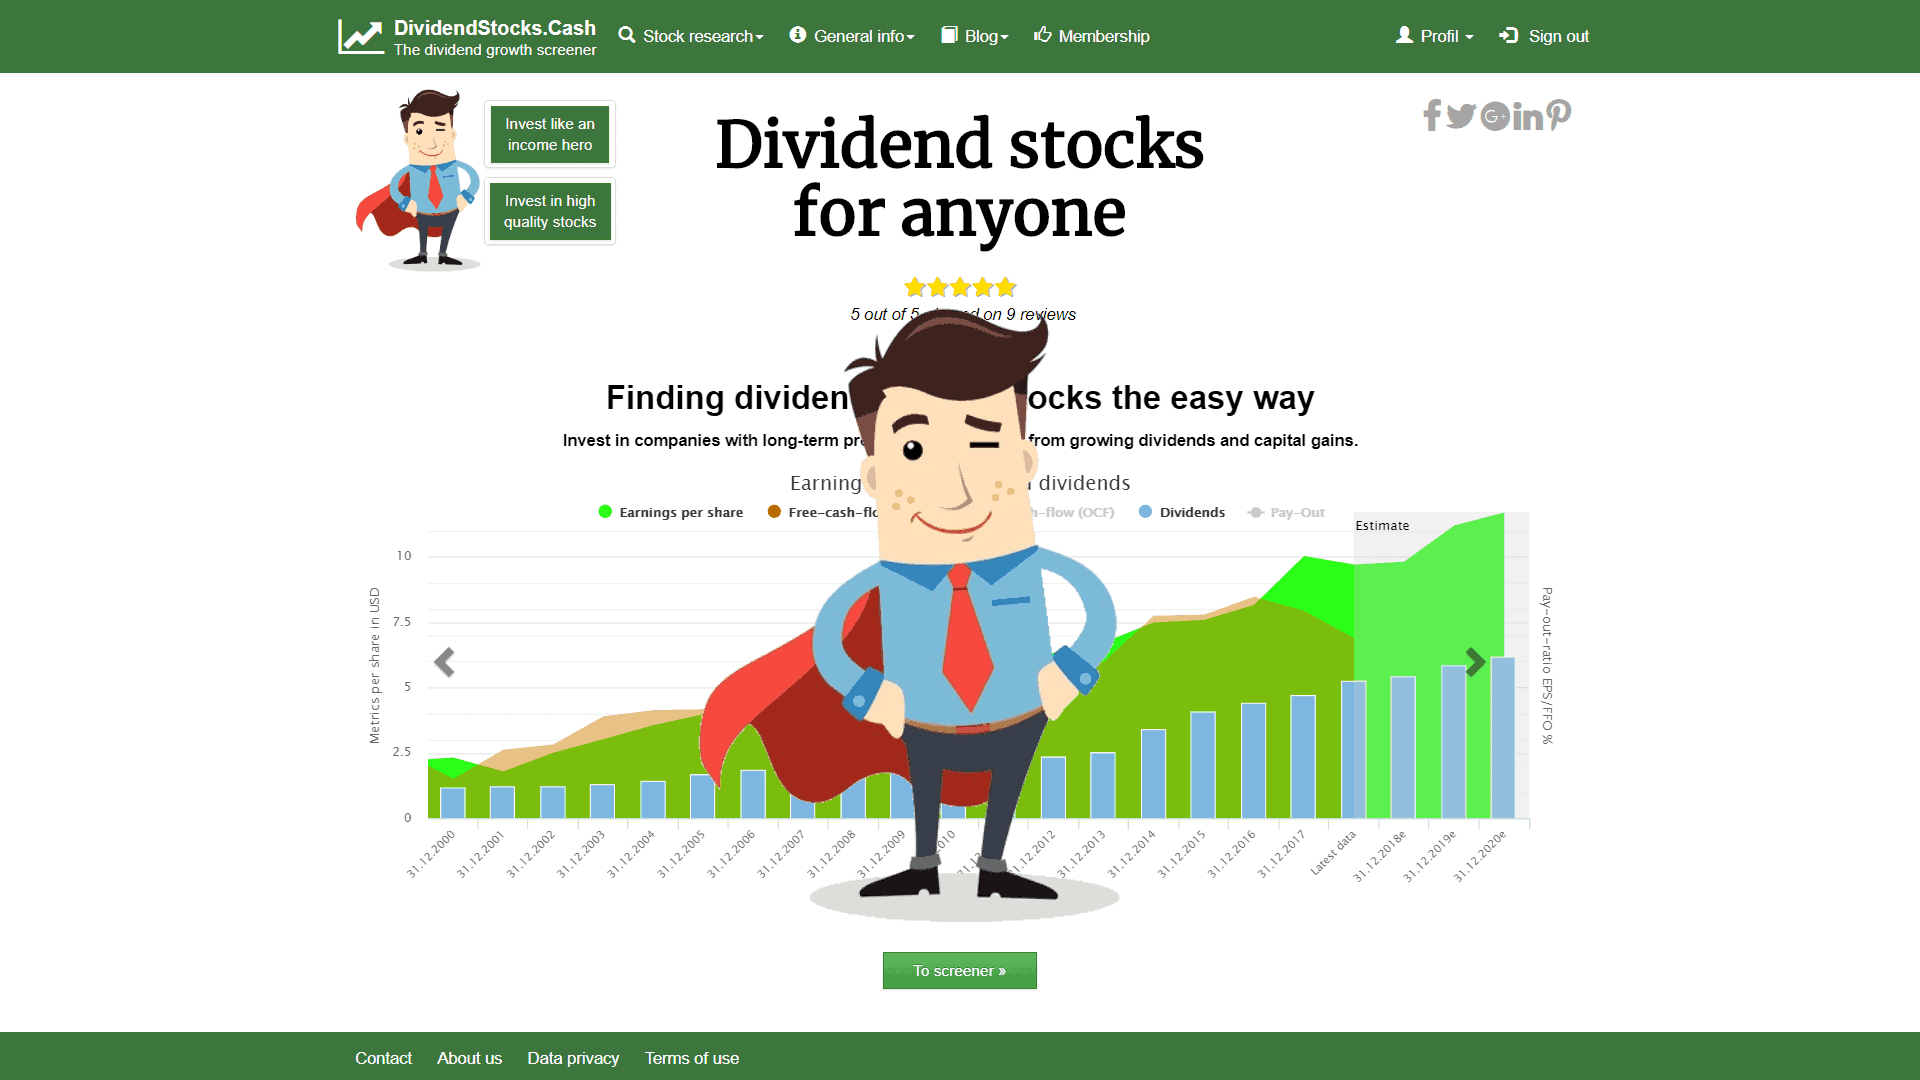 International Dividend Stocks On Discount - September 2018